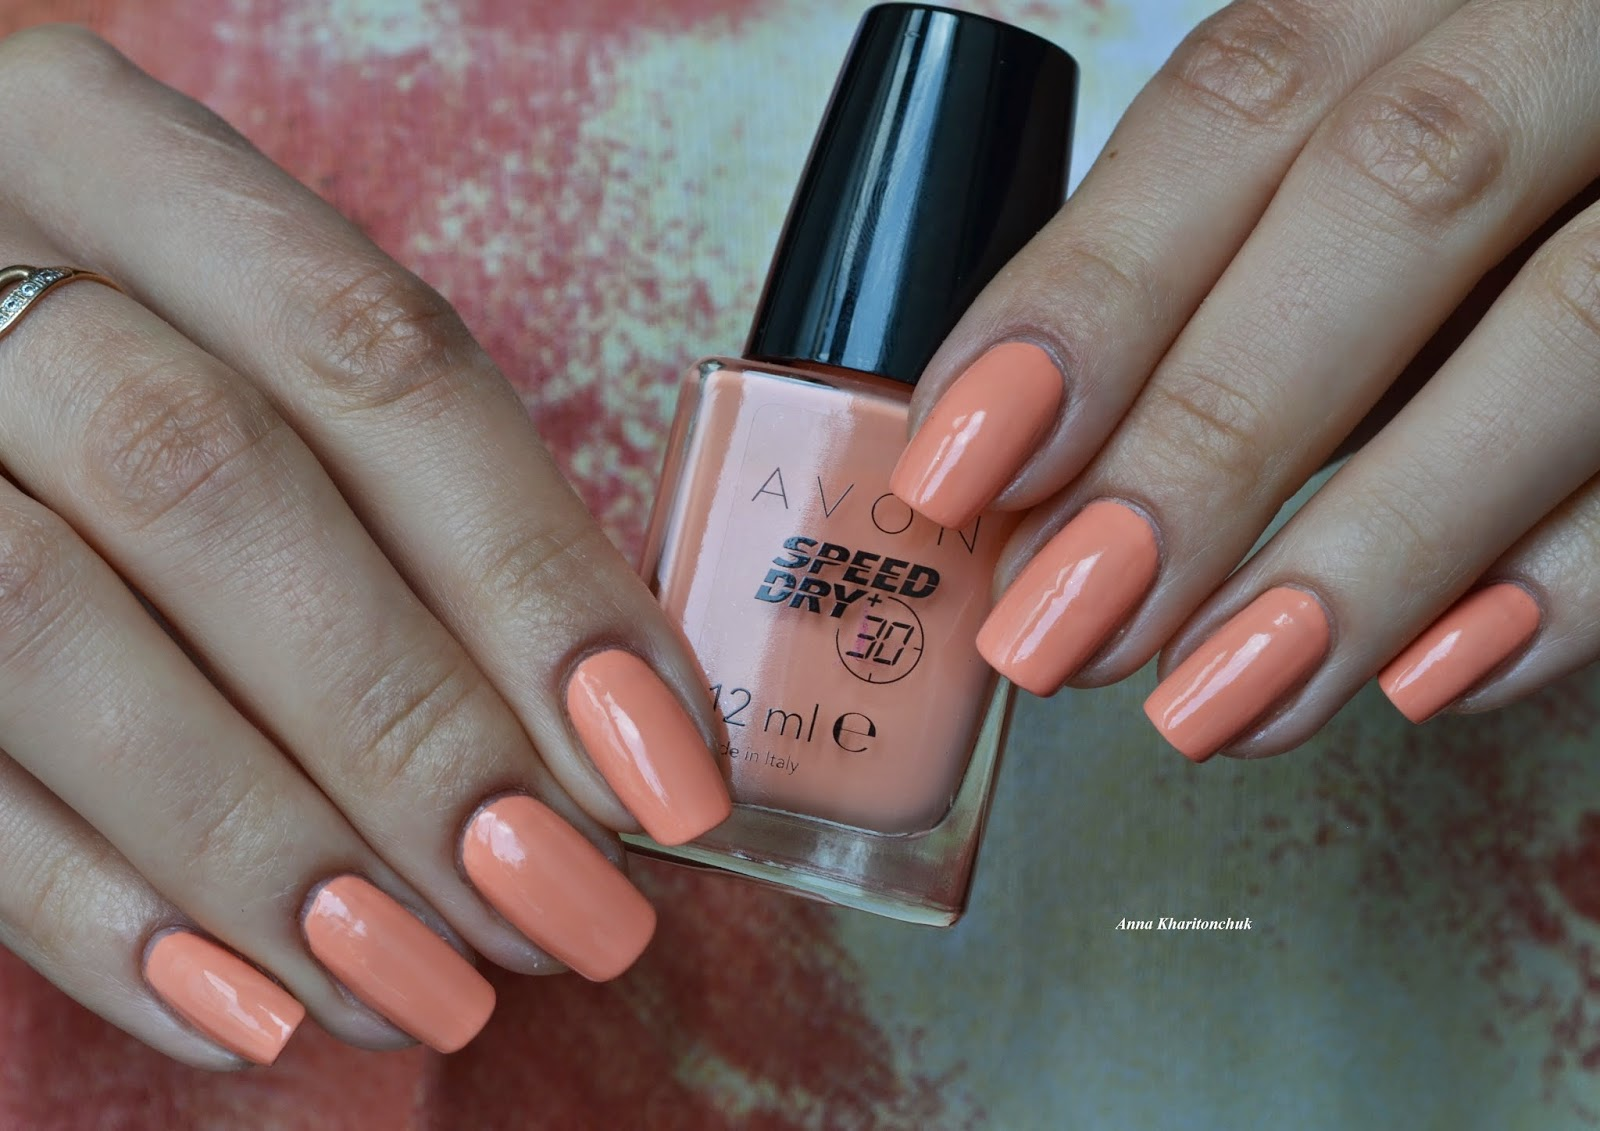 Avon Speed Dry Swift Sherbet